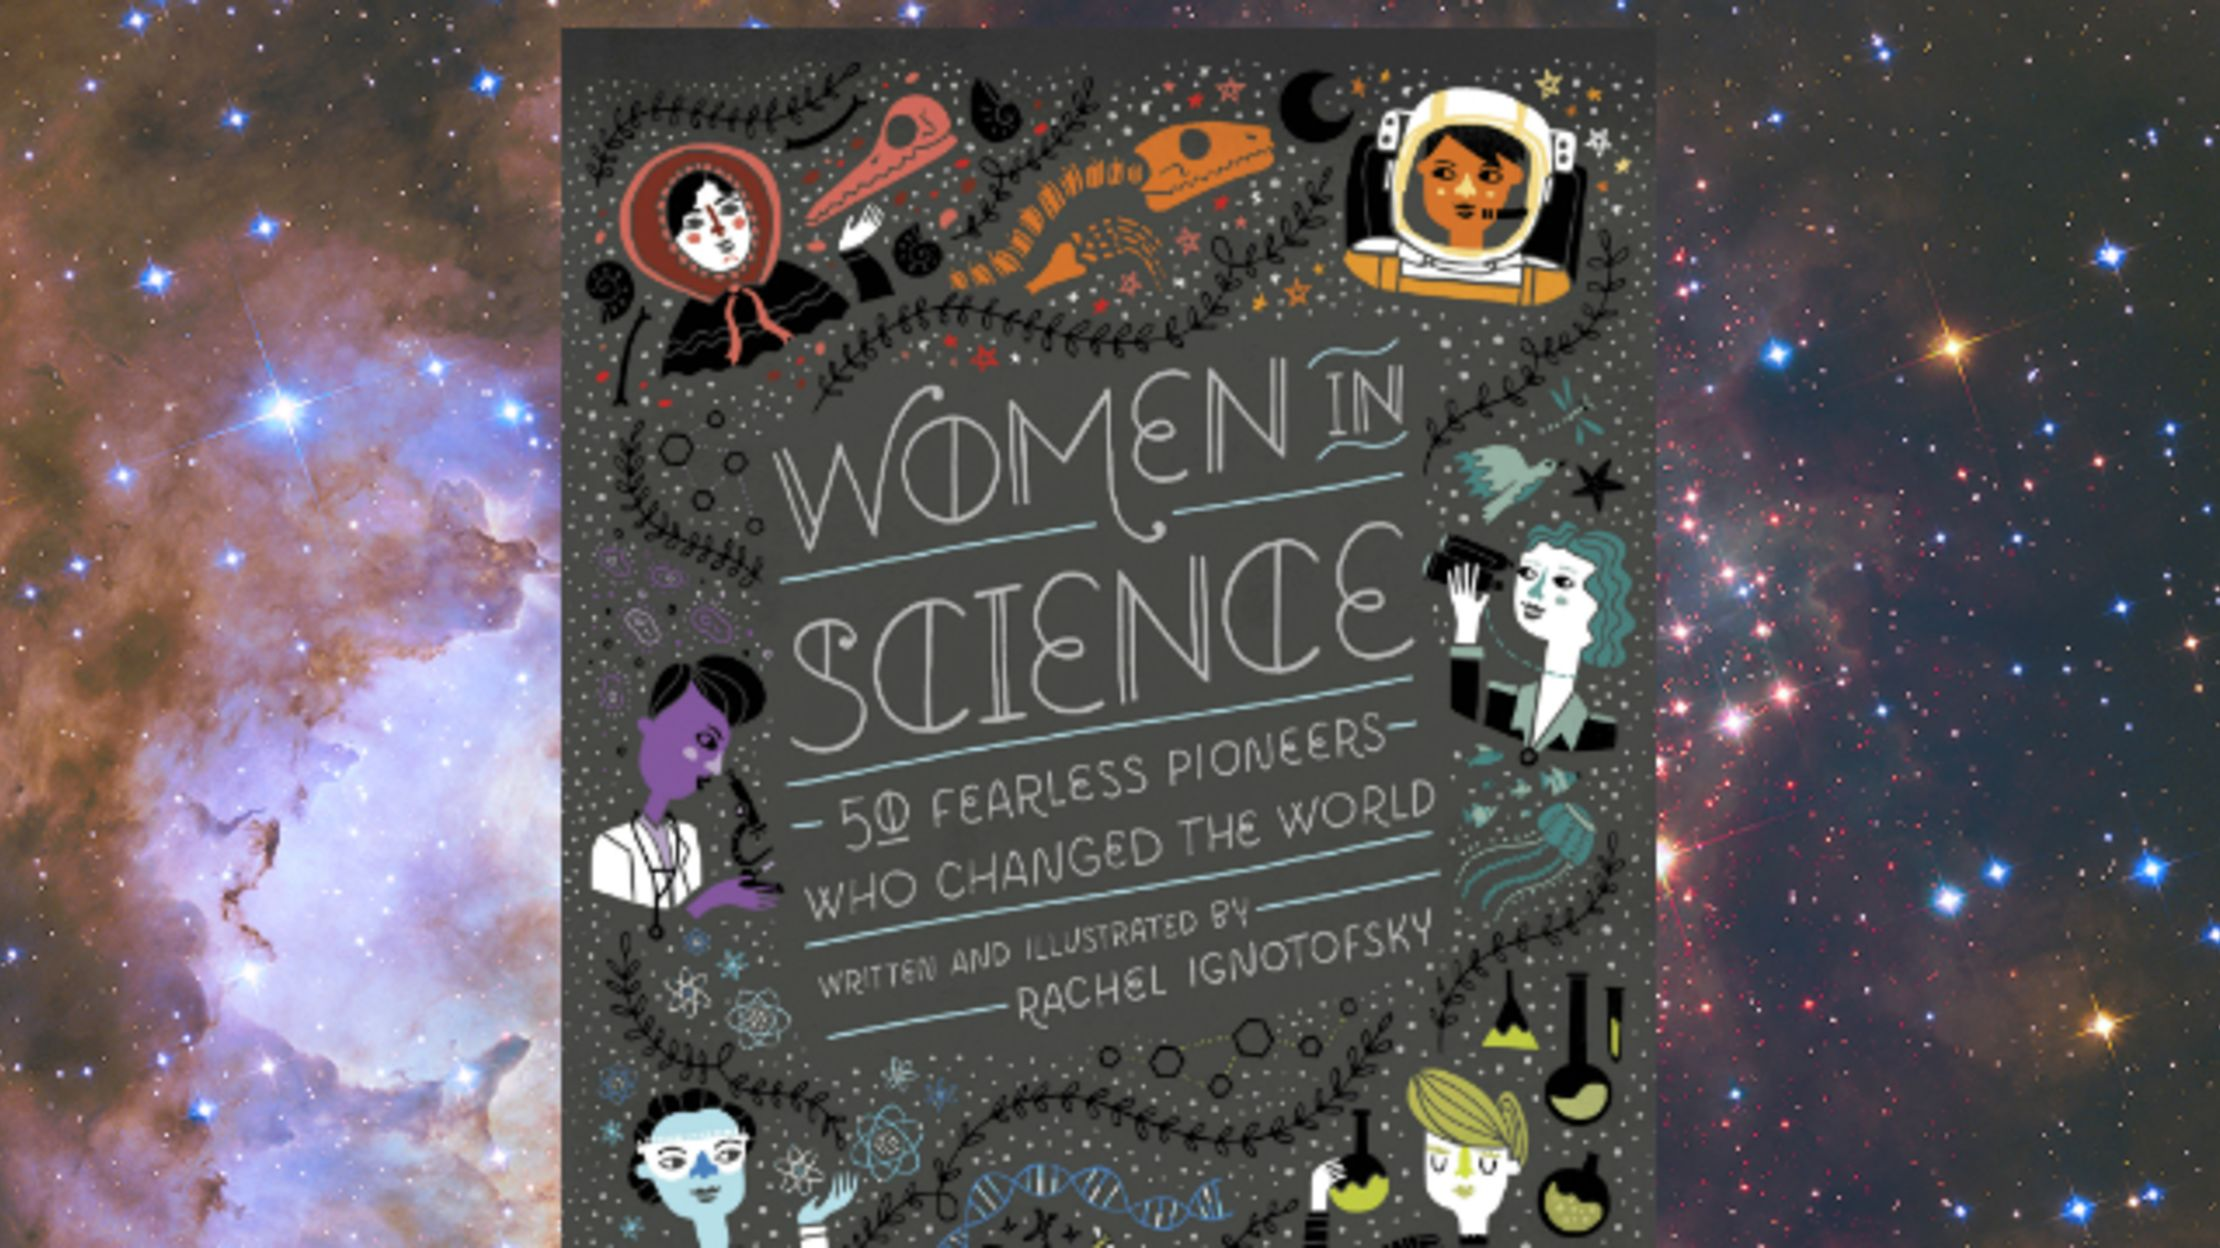 6ee7adf6f2b00 Picture Book Women in Science Captures Little-Known Stories of Pioneers